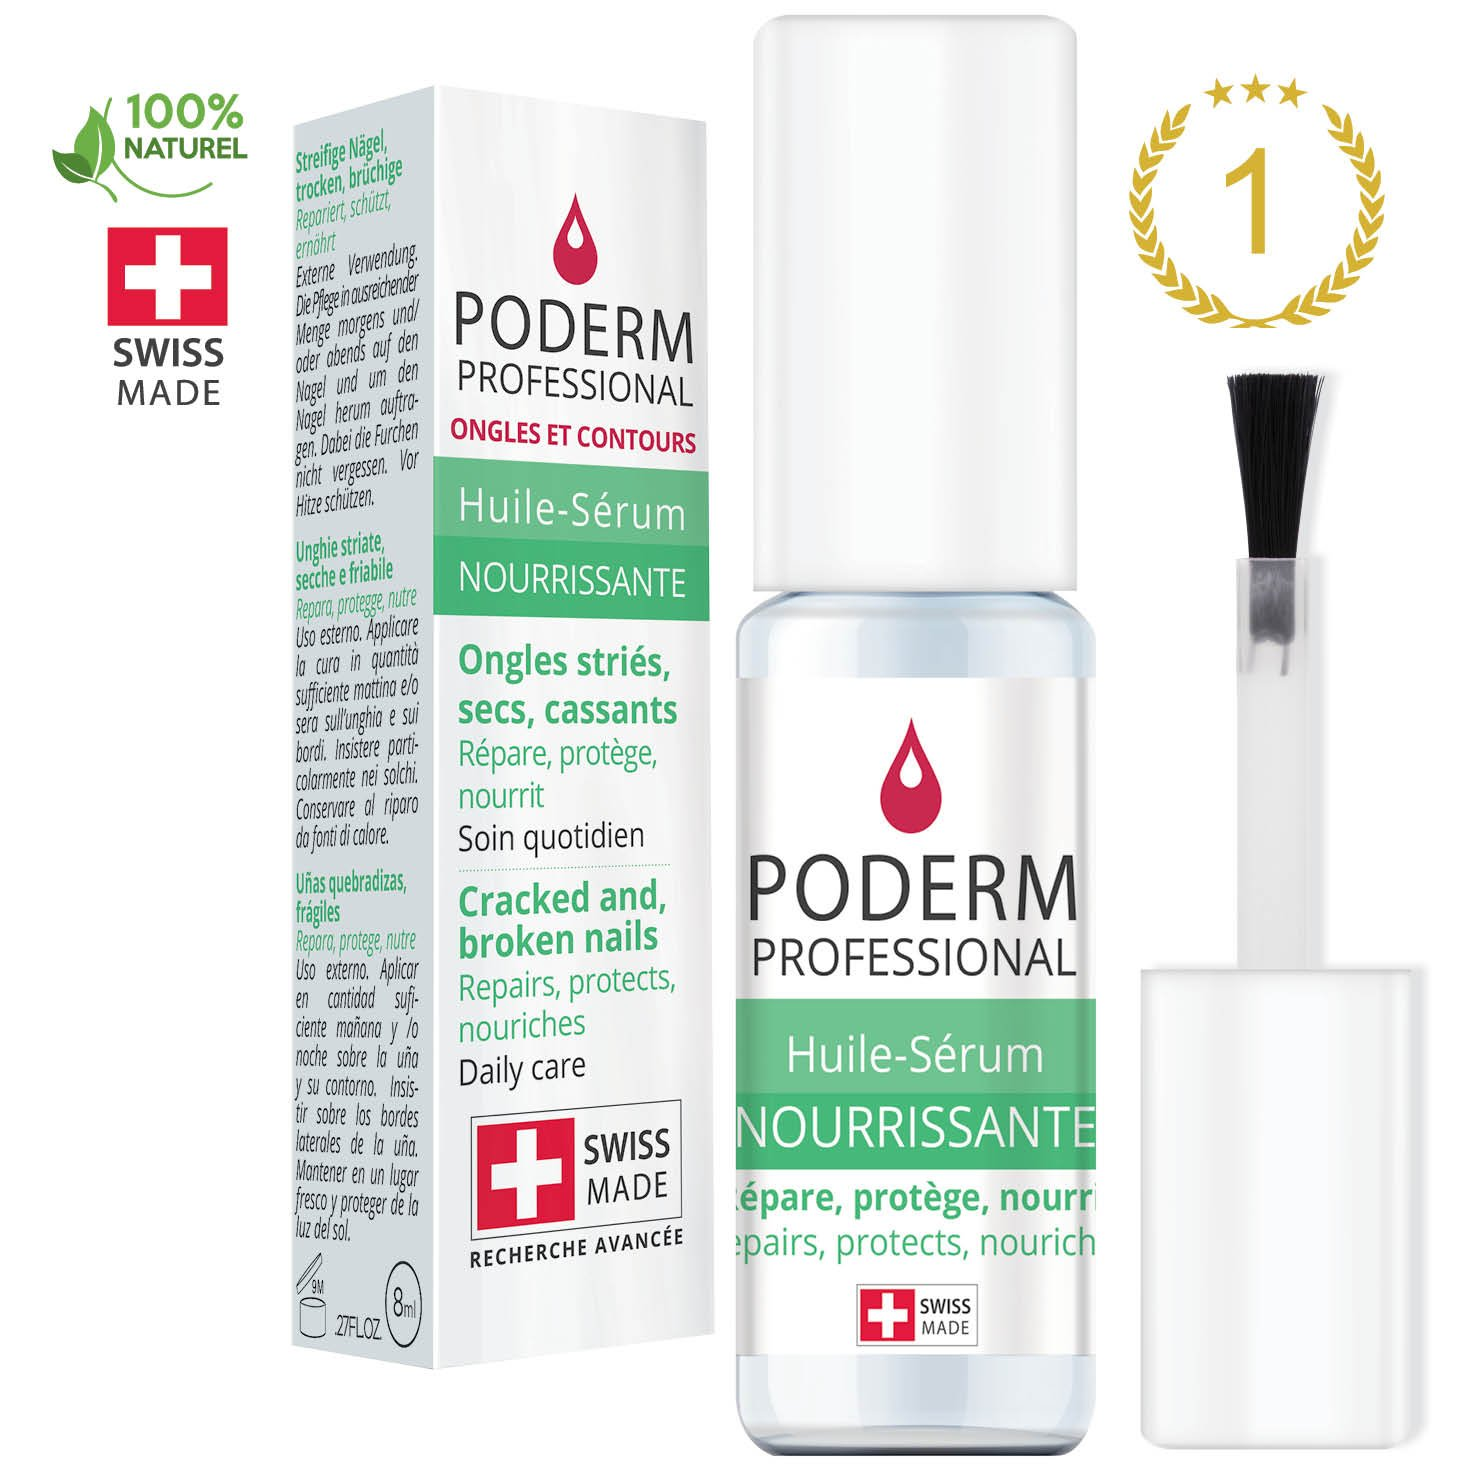 DRY, CRACKED AND BROKEN NAILS. REPAIRS, PROTECTS, NOURISHES. Natural, easy, fast treatment for hands and feet using exceptional Swiss plants and essential oils (organic lemon and cinnamon). by PODERM